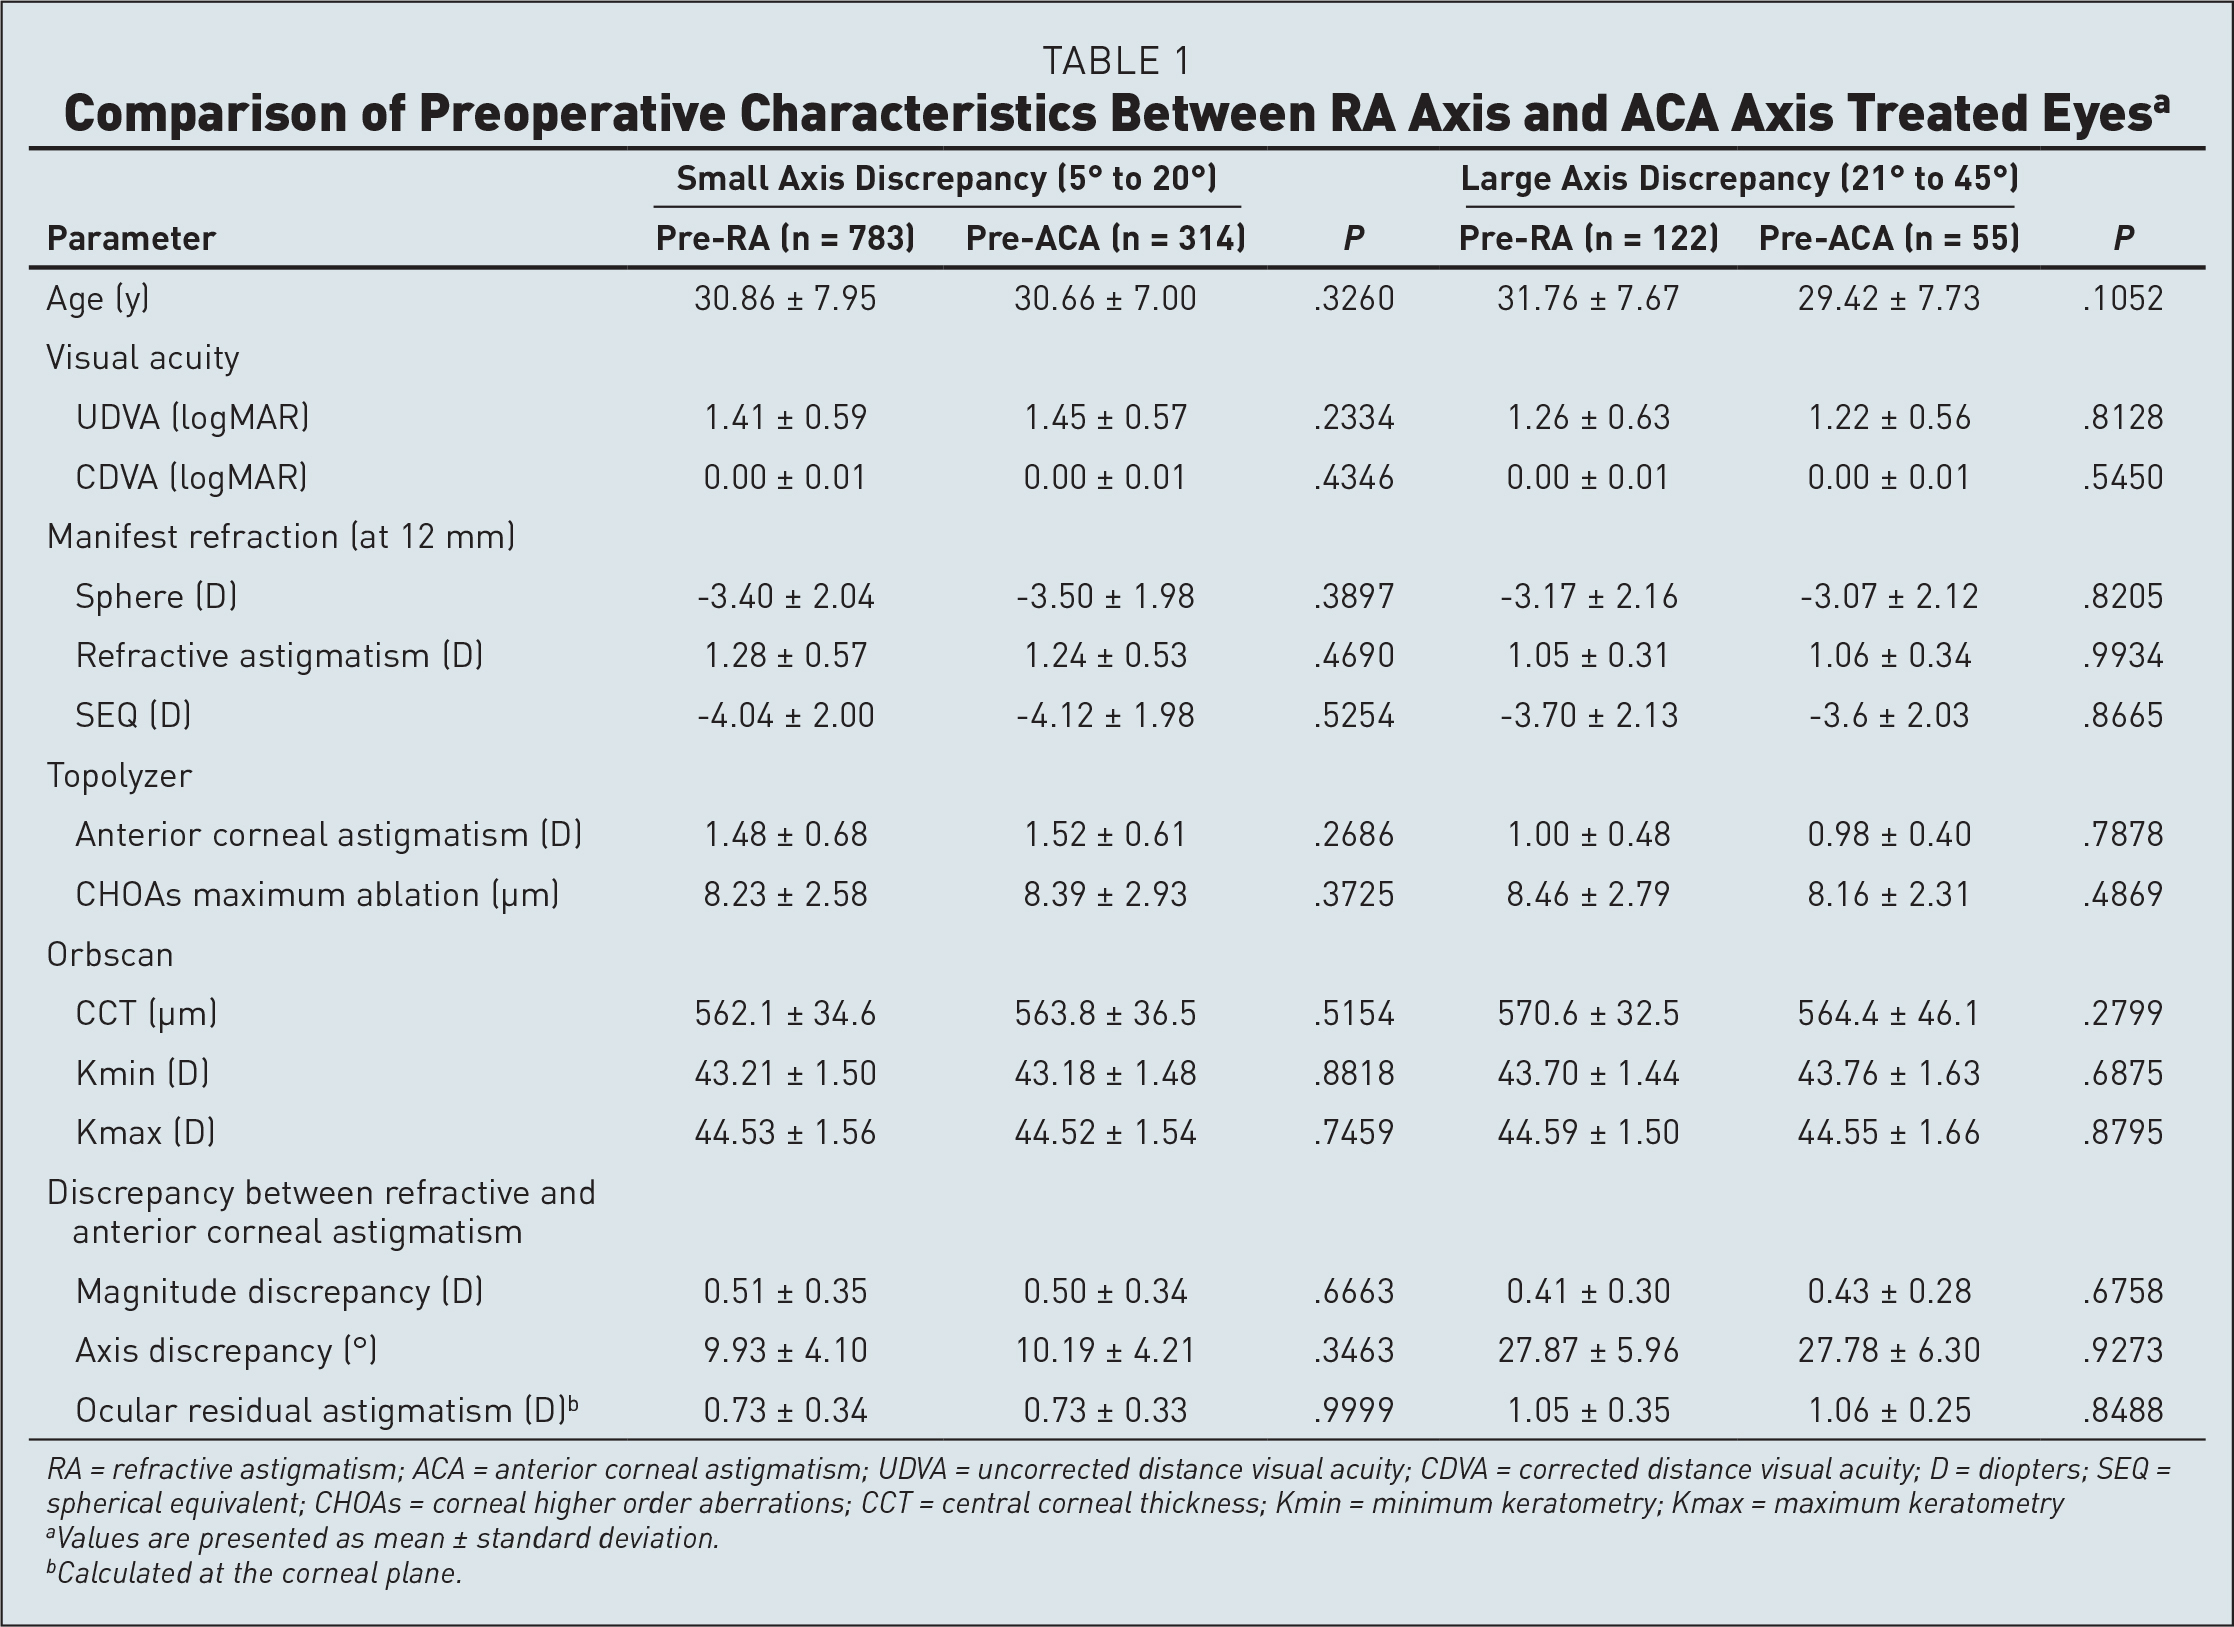 Comparison of Preoperative Characteristics Between RA Axis and ACA Axis Treated Eyesa